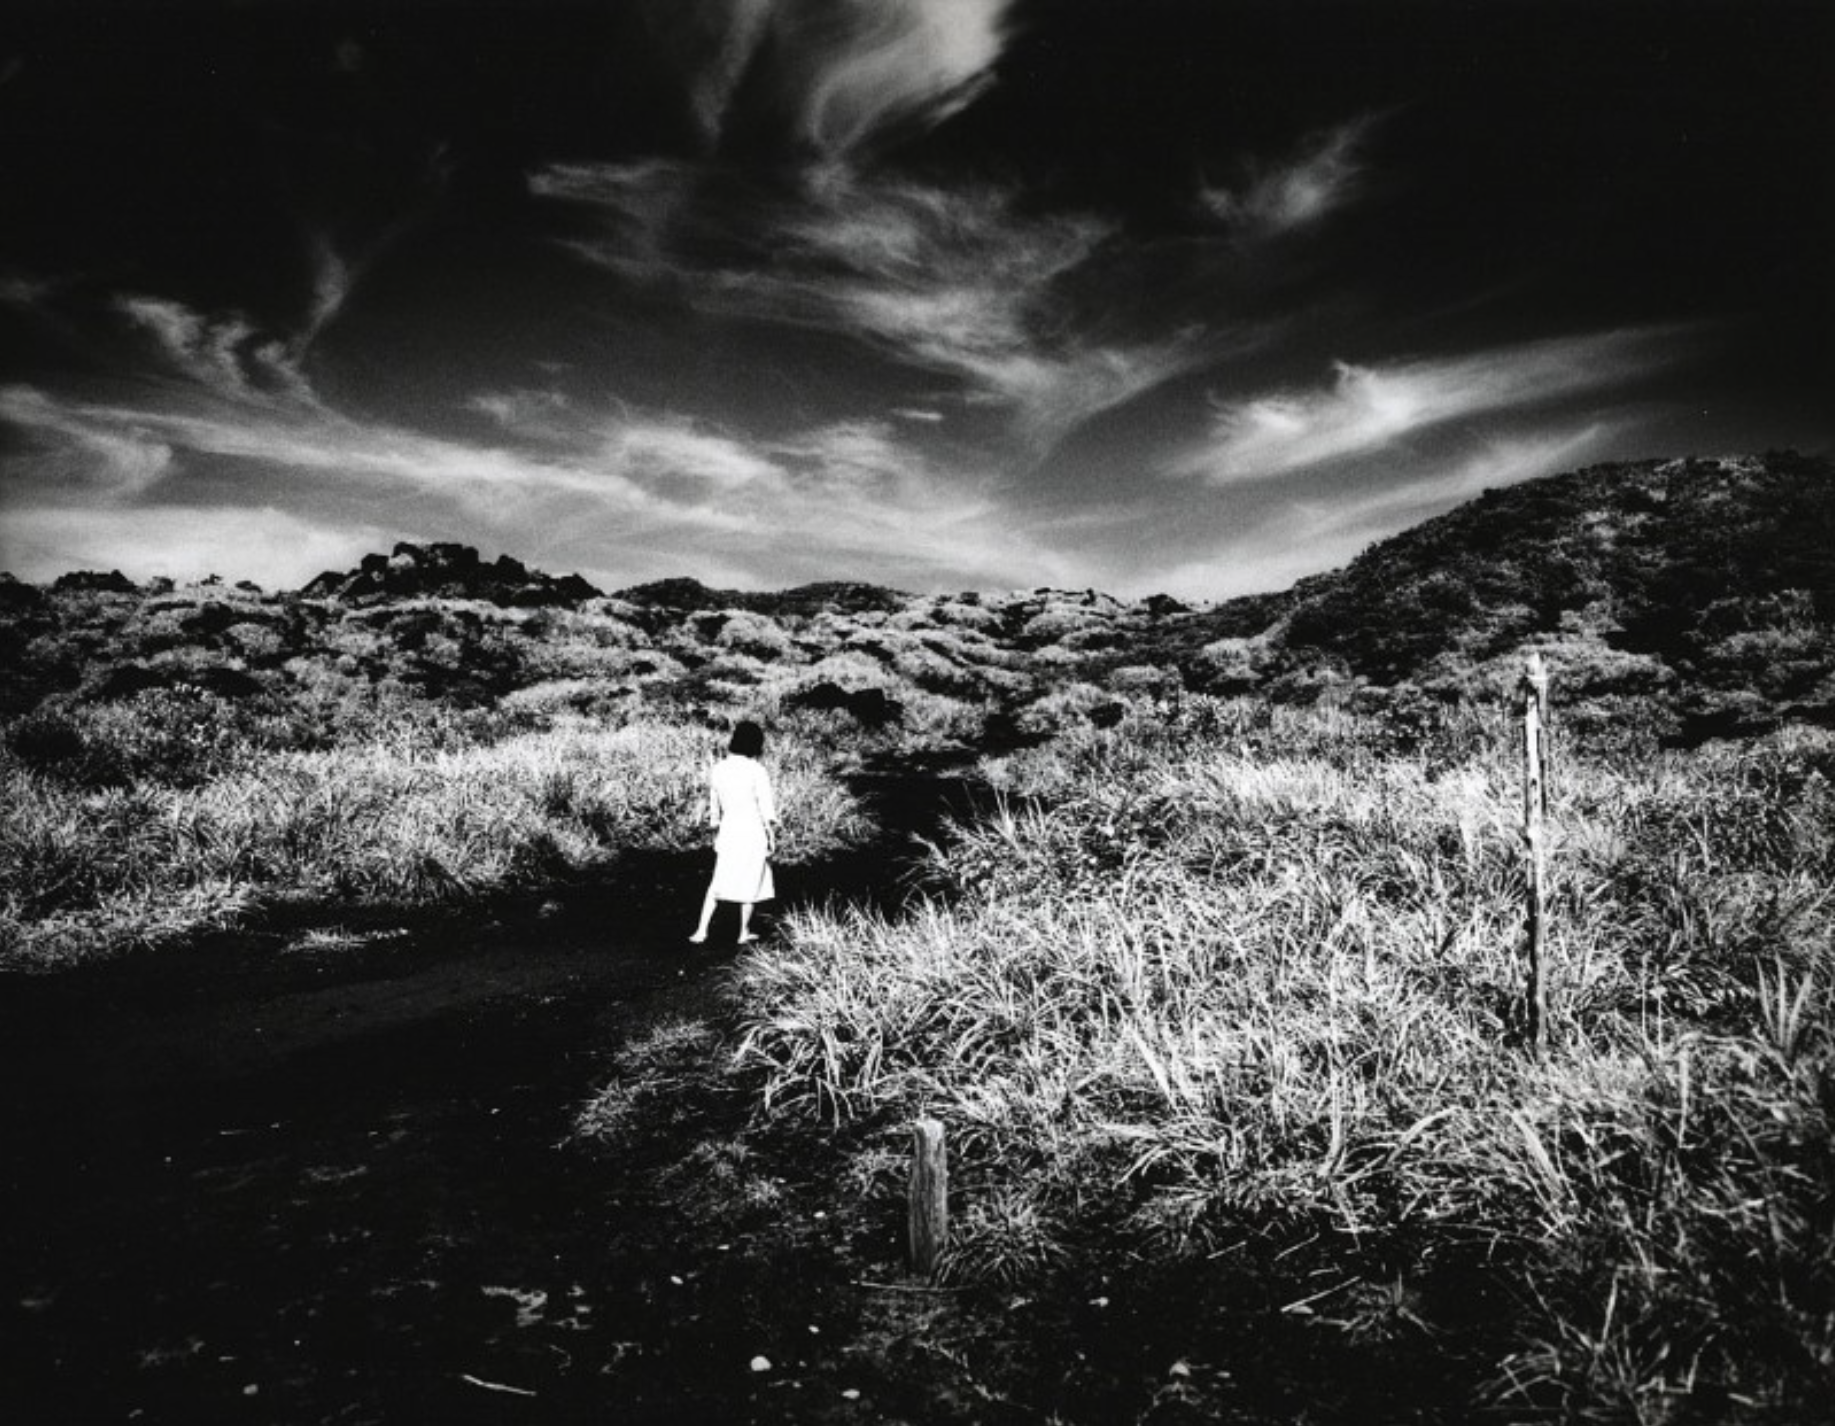 © Yojiro Imasaka, n.17 from the series of Traveling Planet, 2007 Exhibition: Nocturnal Labyrinth, gelatin silver print